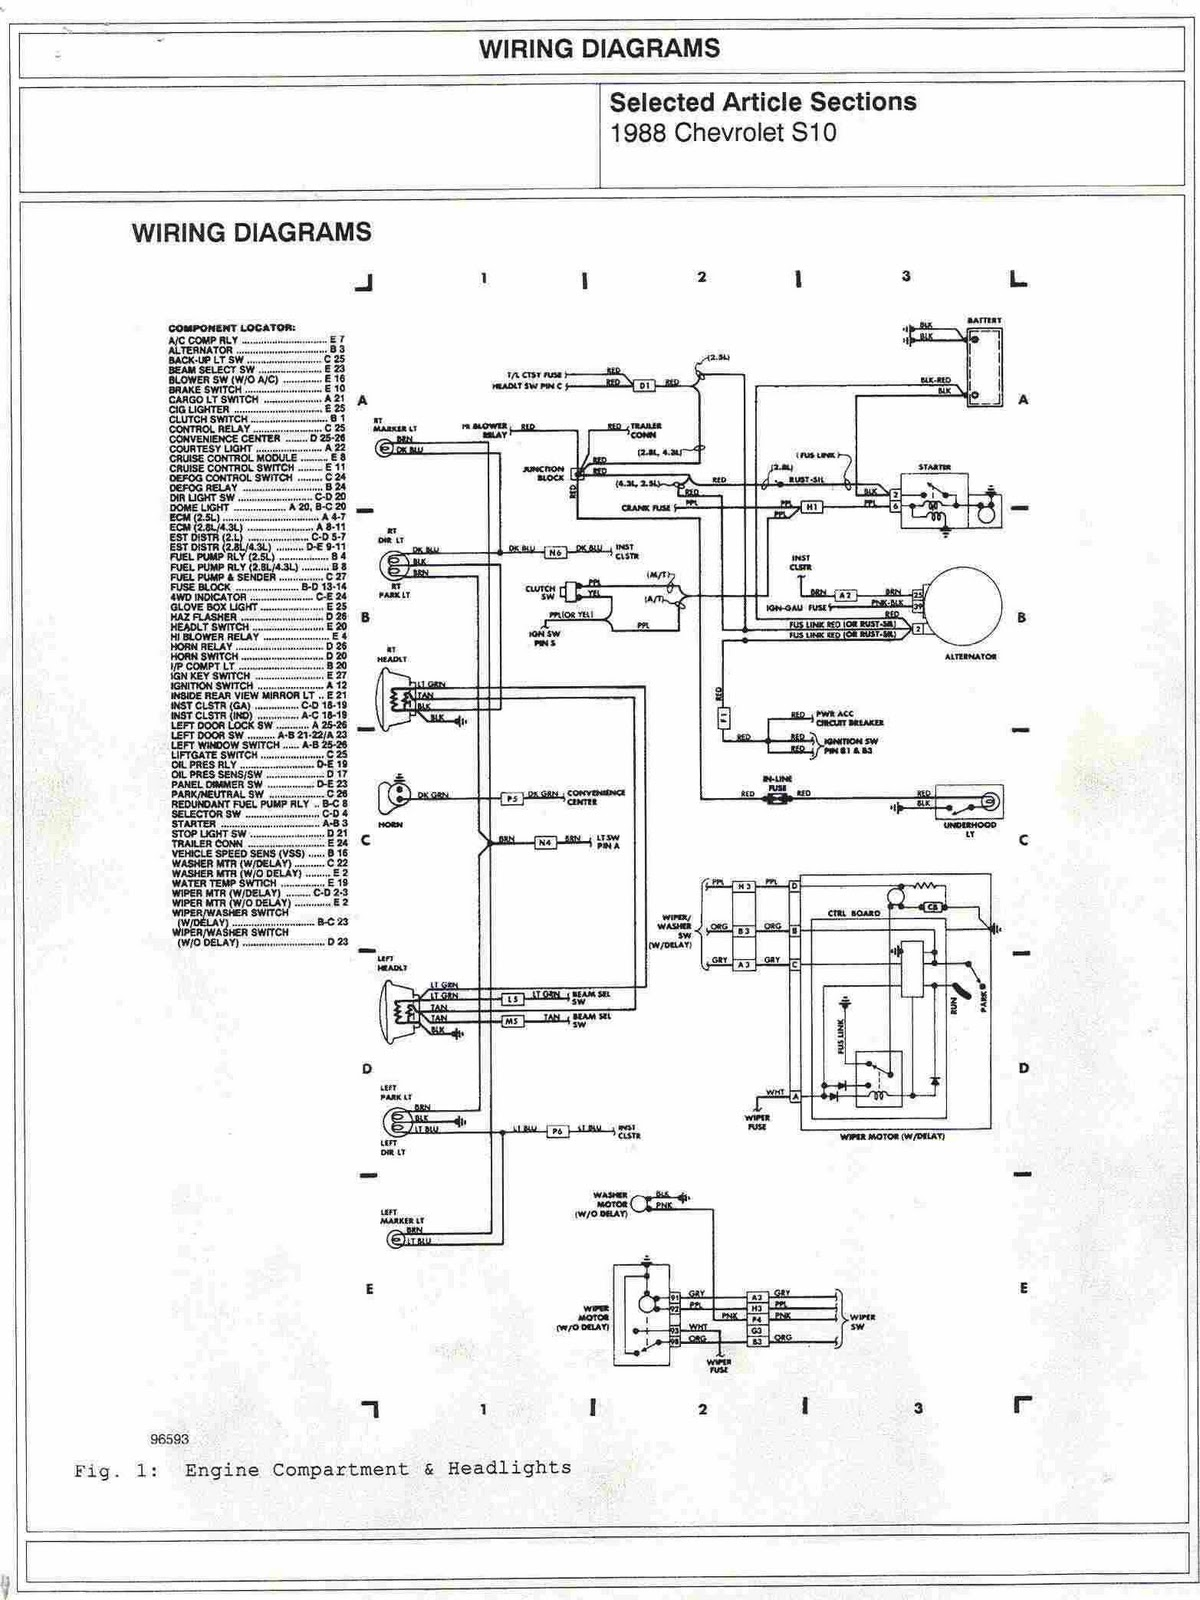 1988+Chevrolet+S10+Engine+Compartment+and+Headlights+Wiring+Diagrams 95 s10 wiring diagram 95 tahoe wiring diagram \u2022 wiring diagrams 1988 toyota pickup headlight wiring diagram at honlapkeszites.co